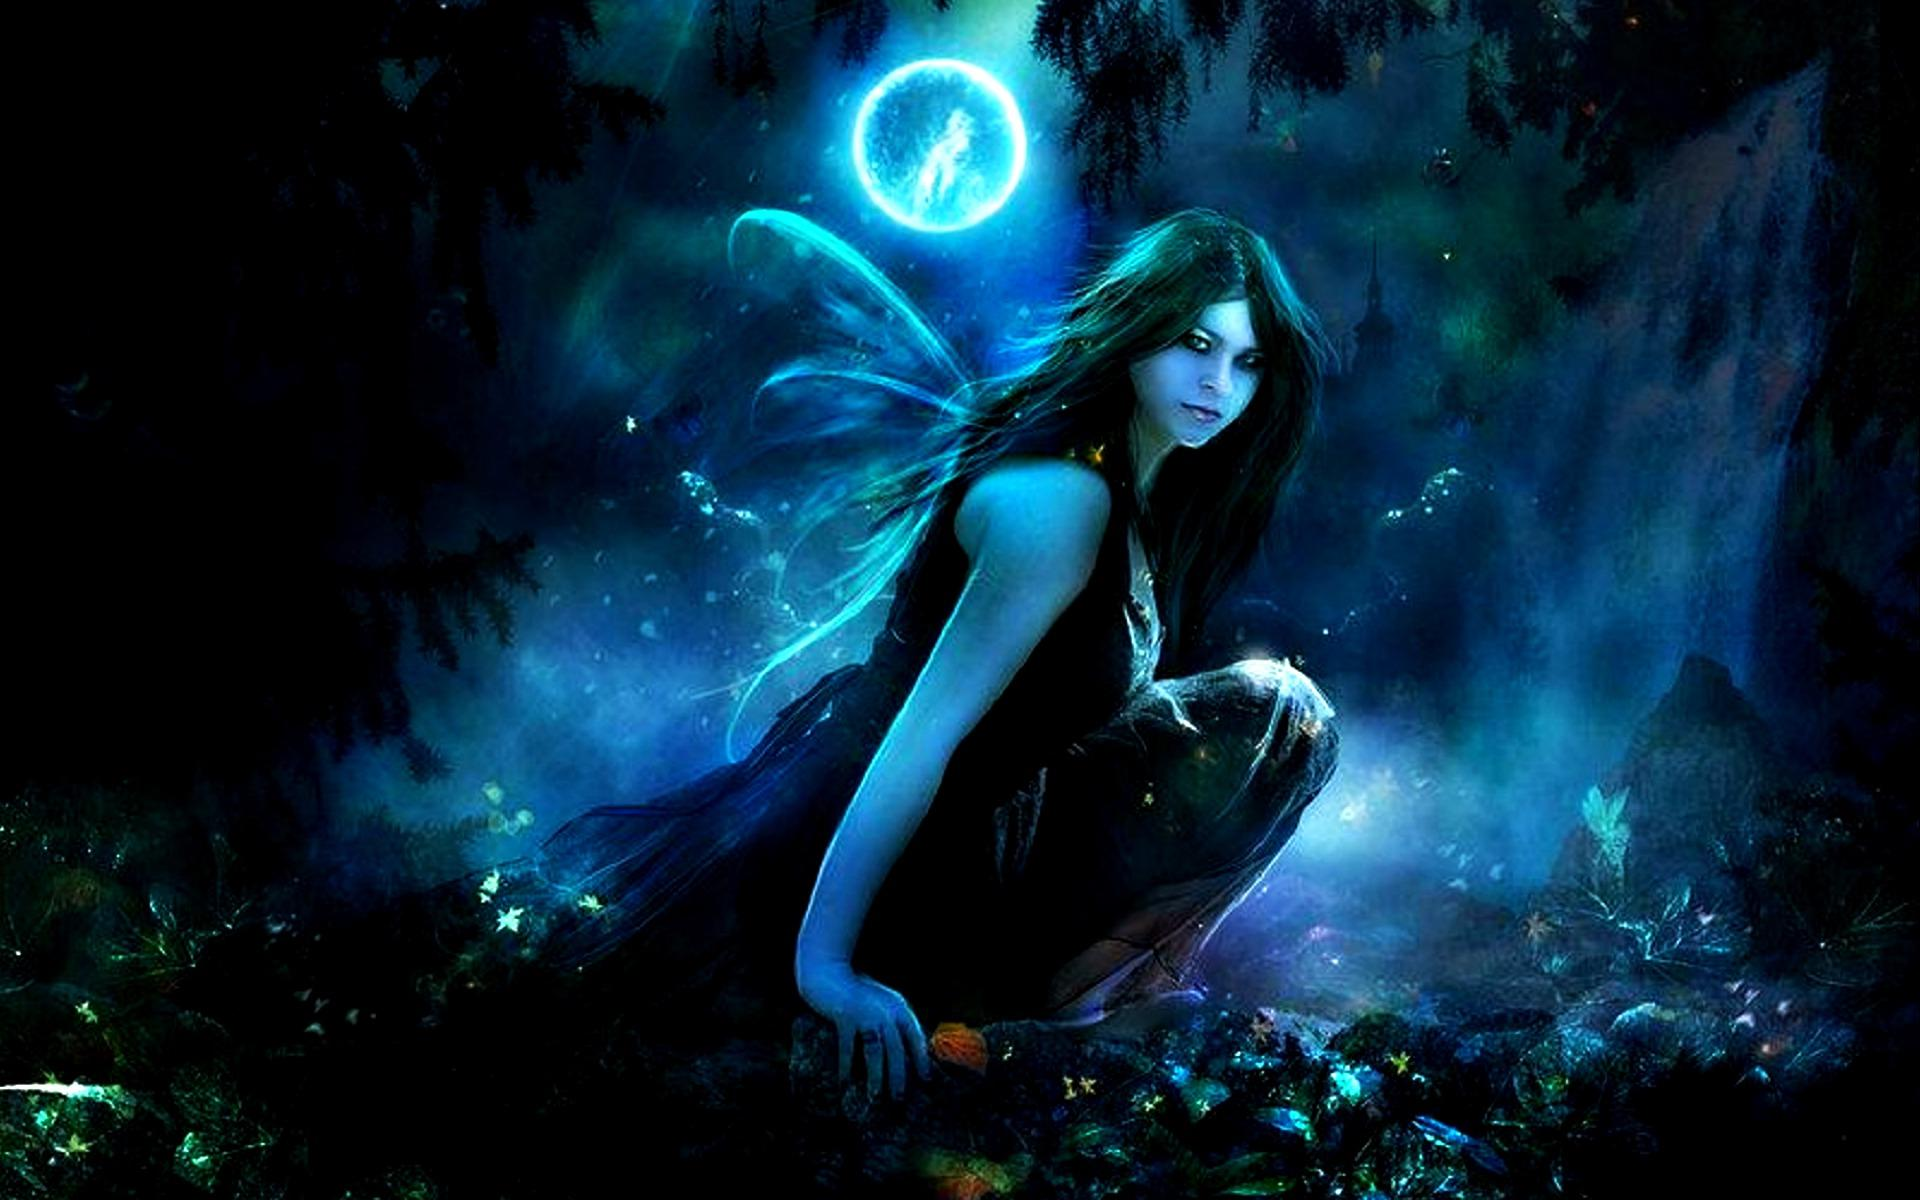 Good Wallpaper Night Fairy - 145198  Perfect Image Reference-741033.jpg